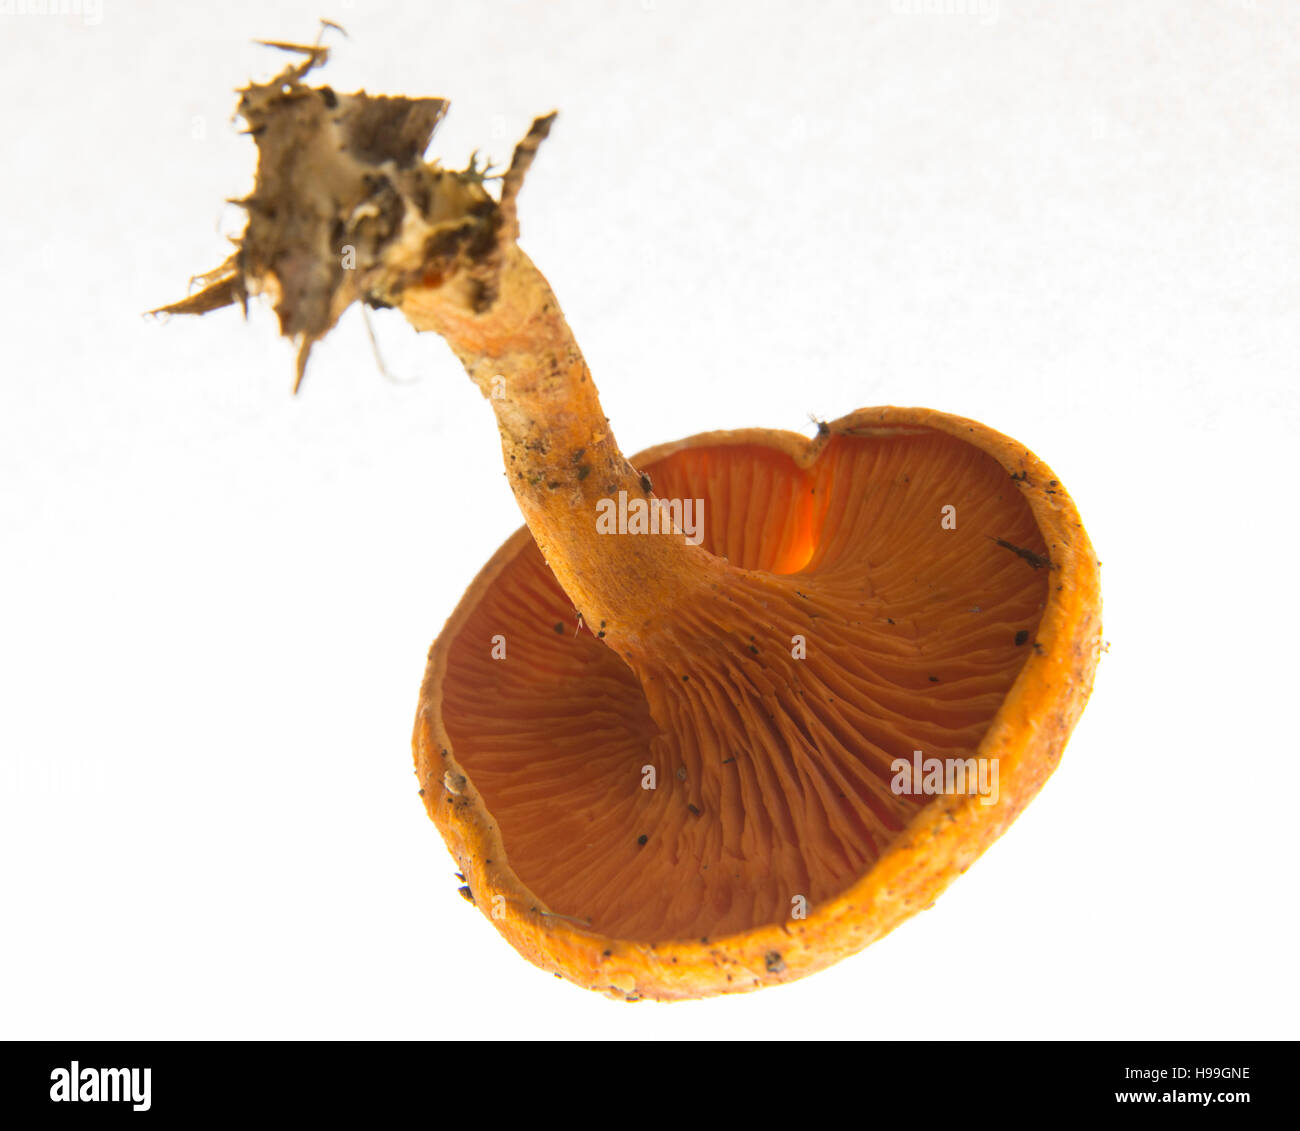 Deceiver mushroom, Laccaria laccata, on a white background bhz - Stock Image